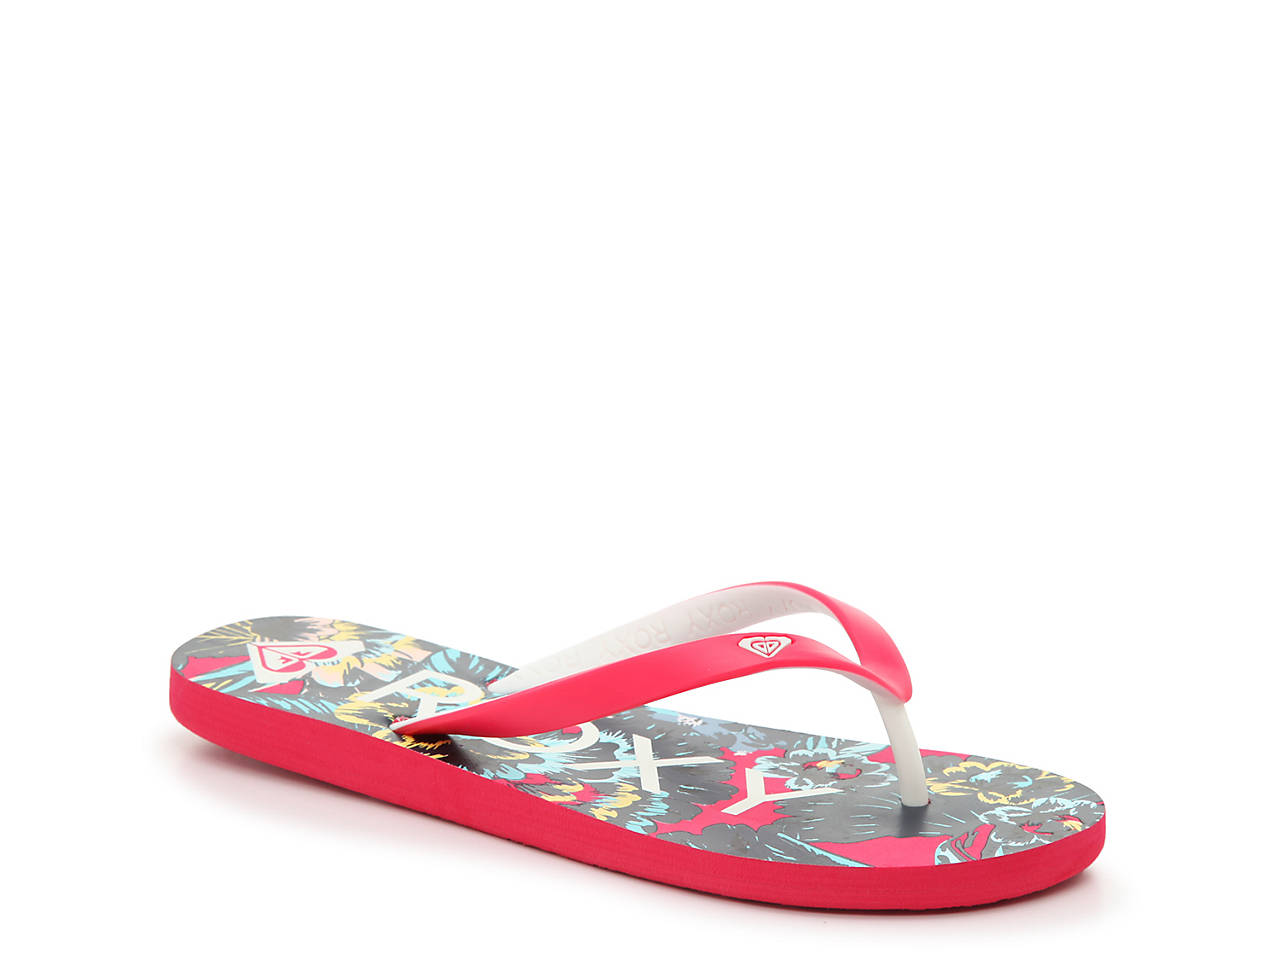 ecbed74f895f Roxy Tahiti Flip Flop Women s Shoes